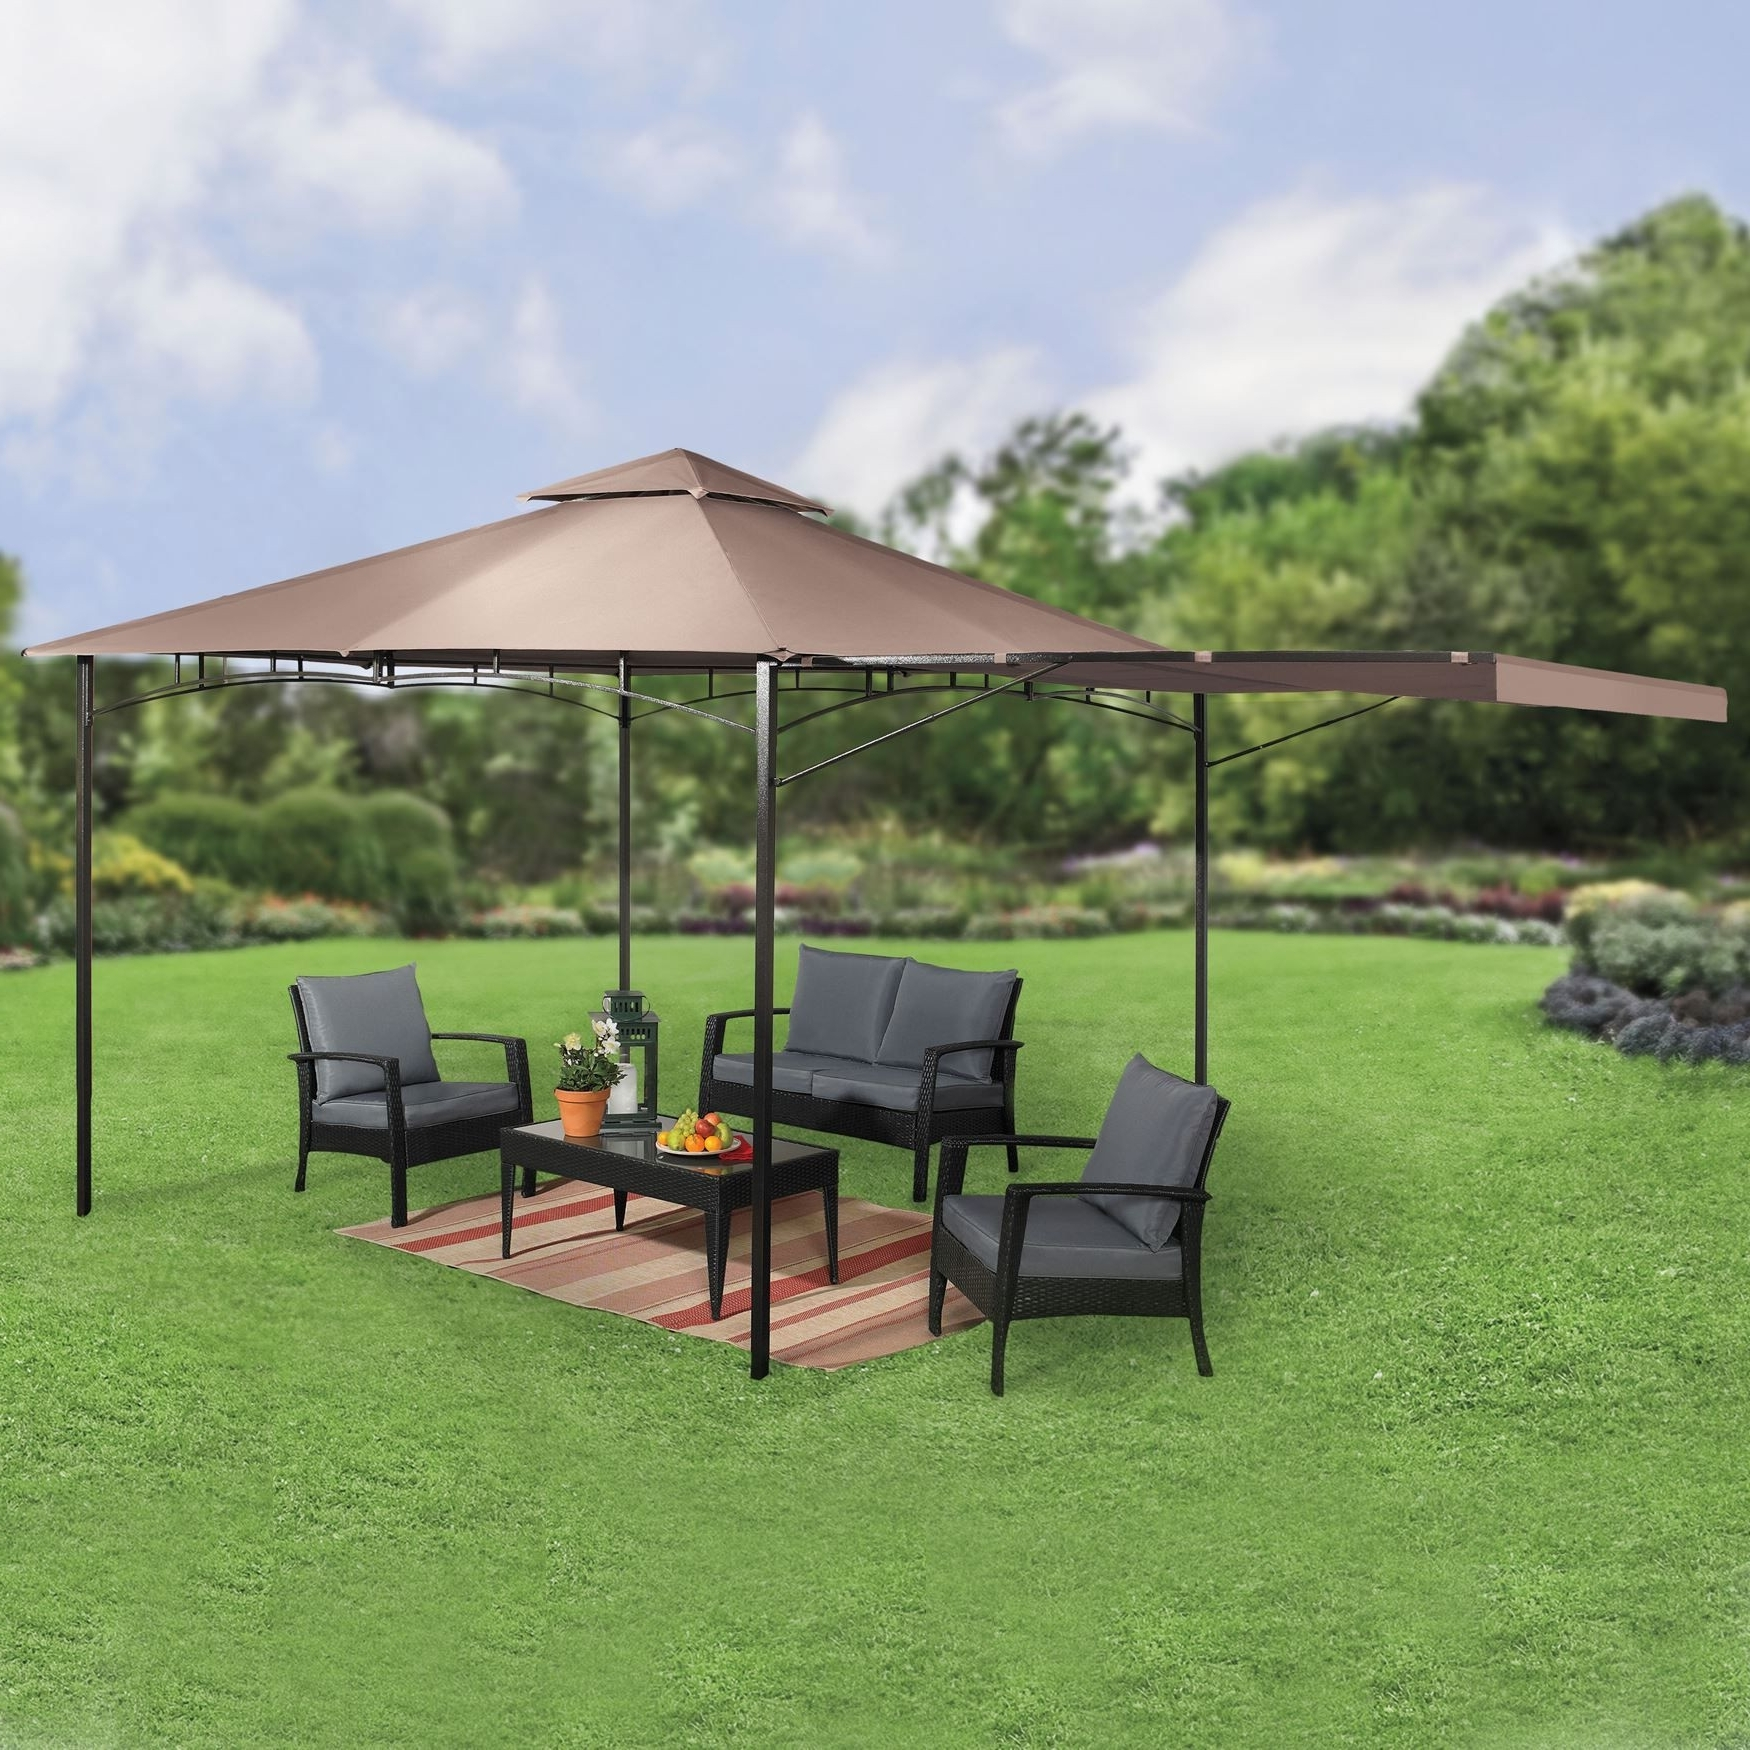 Extended Patio Umbrellas With Regard To Recent Find Out Full Gallery Of 13 Plus Patio Umbrella Gazebo – Displaying (View 7 of 20)